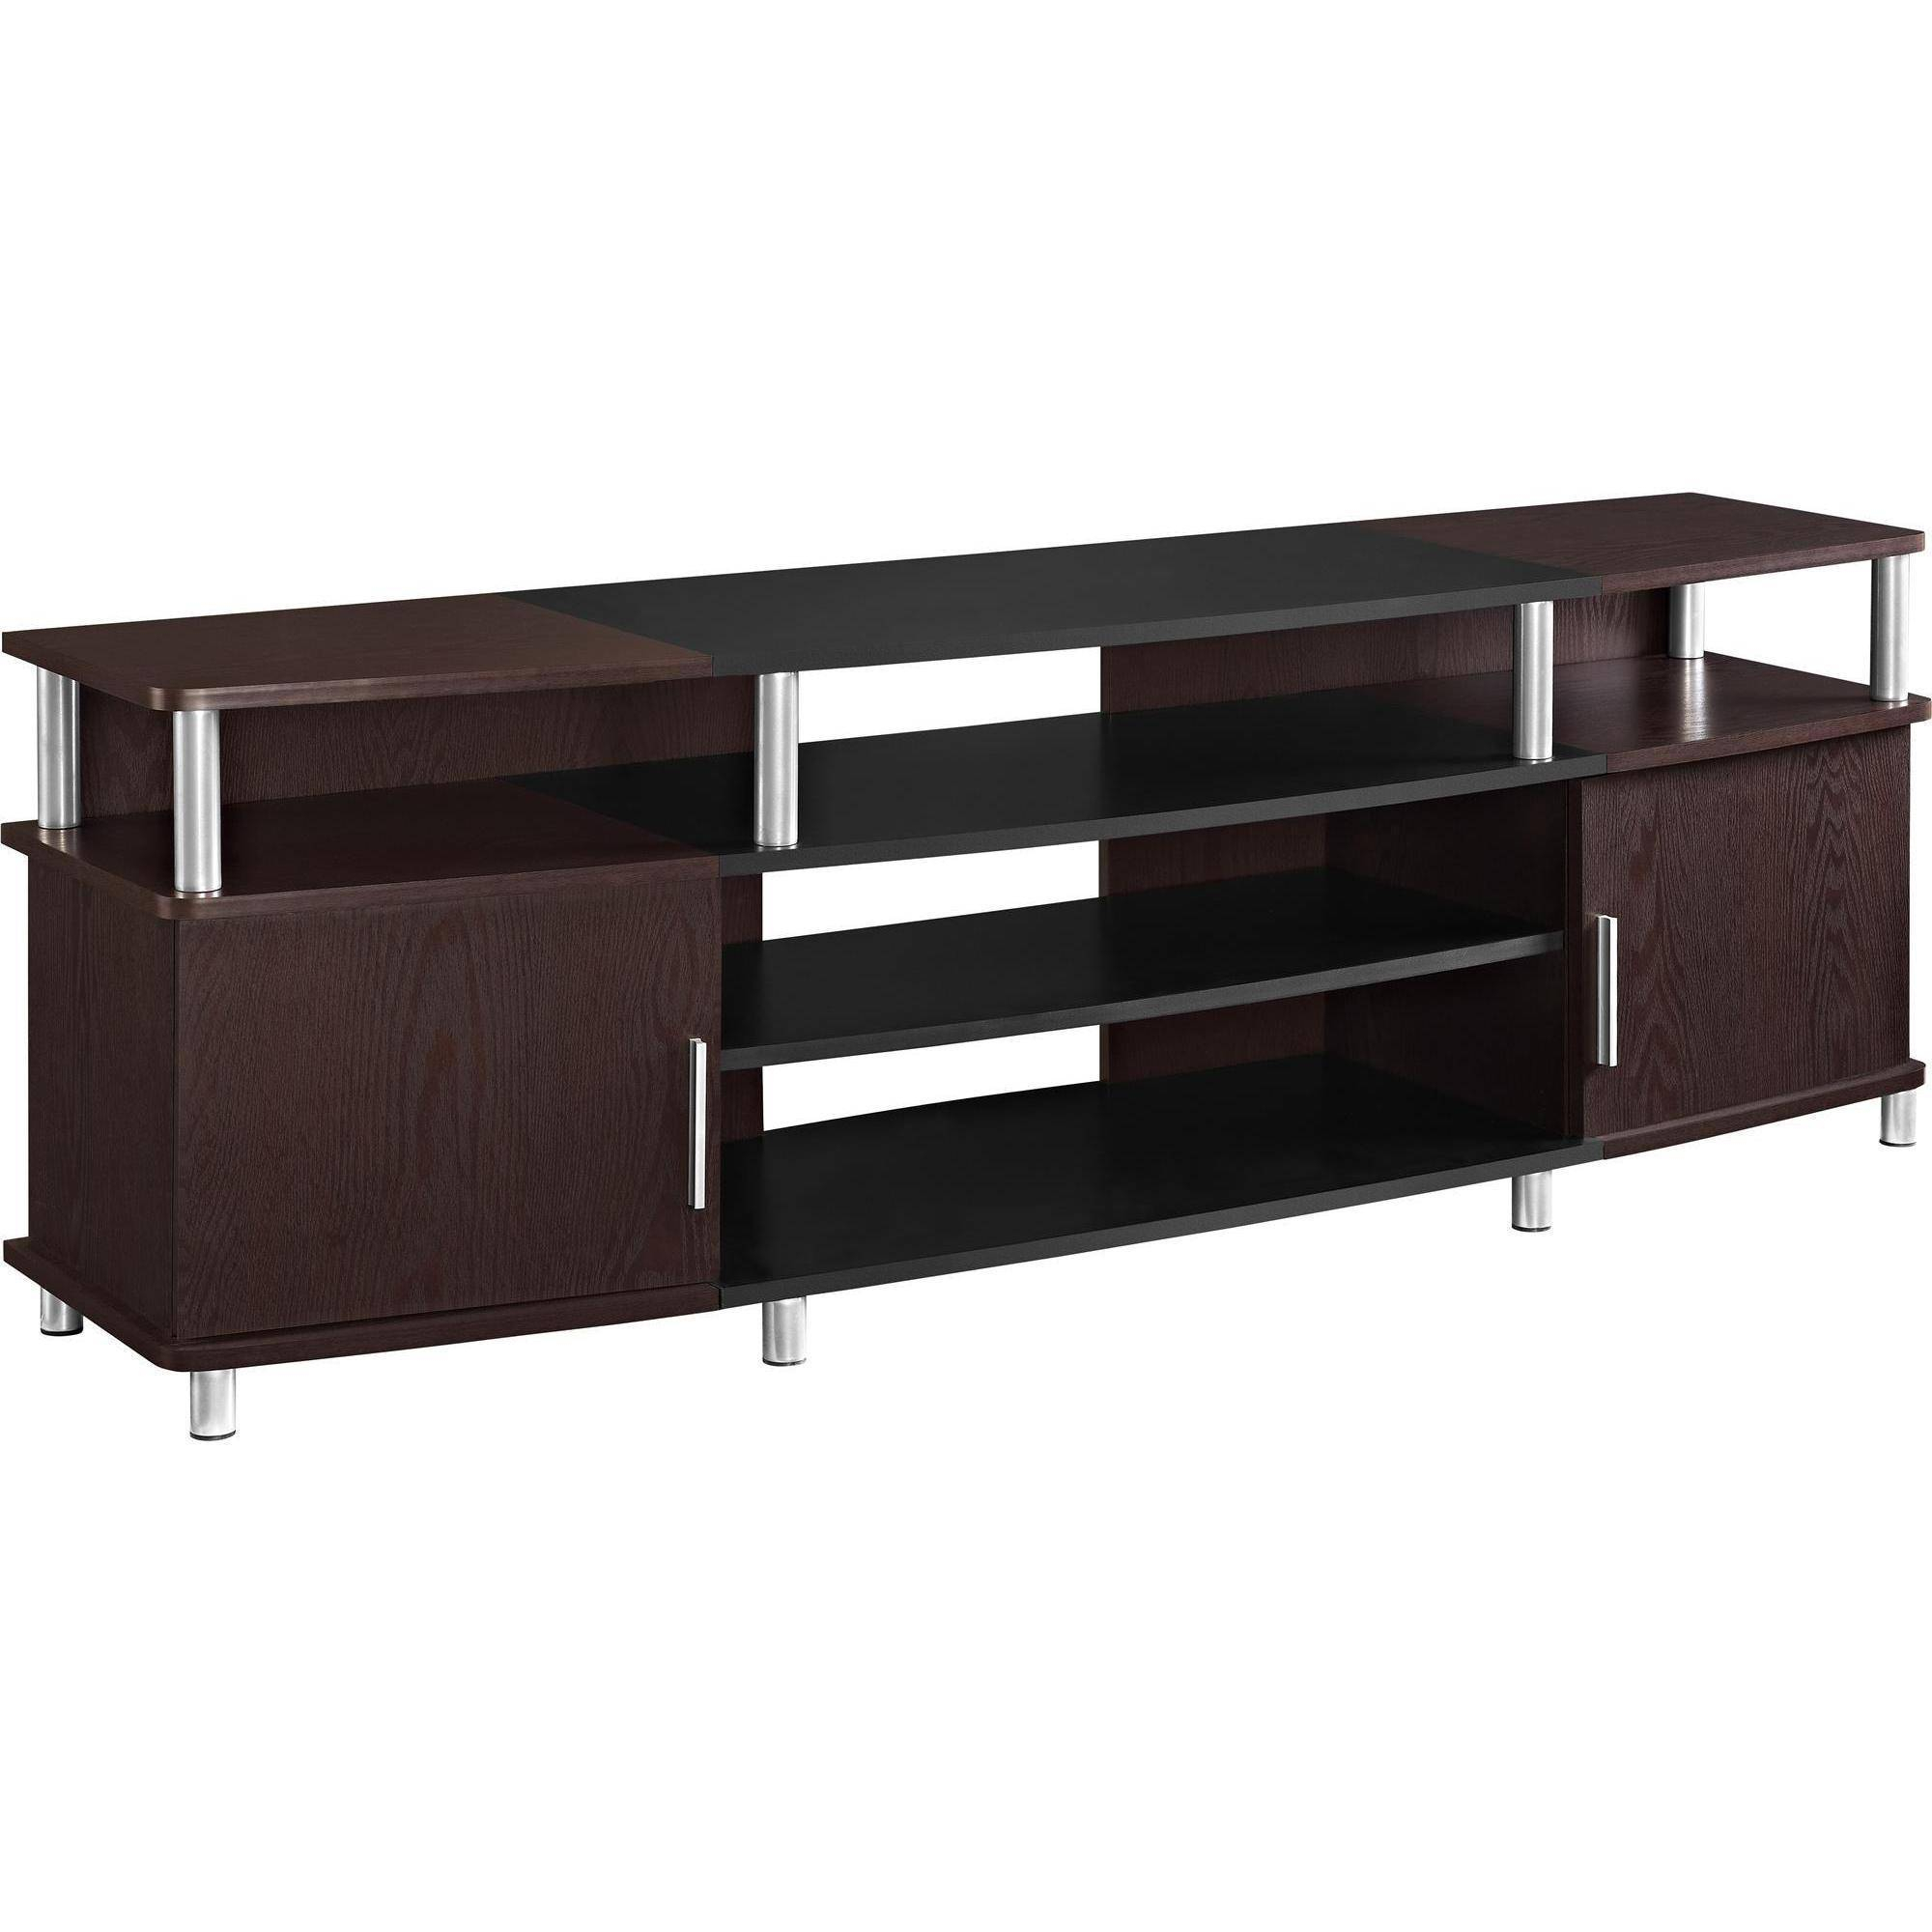 Oak Entertainment Center Wall Units Rc Willey Sale Delivery Draper Throughout Draper 62 Inch Tv Stands (View 19 of 30)